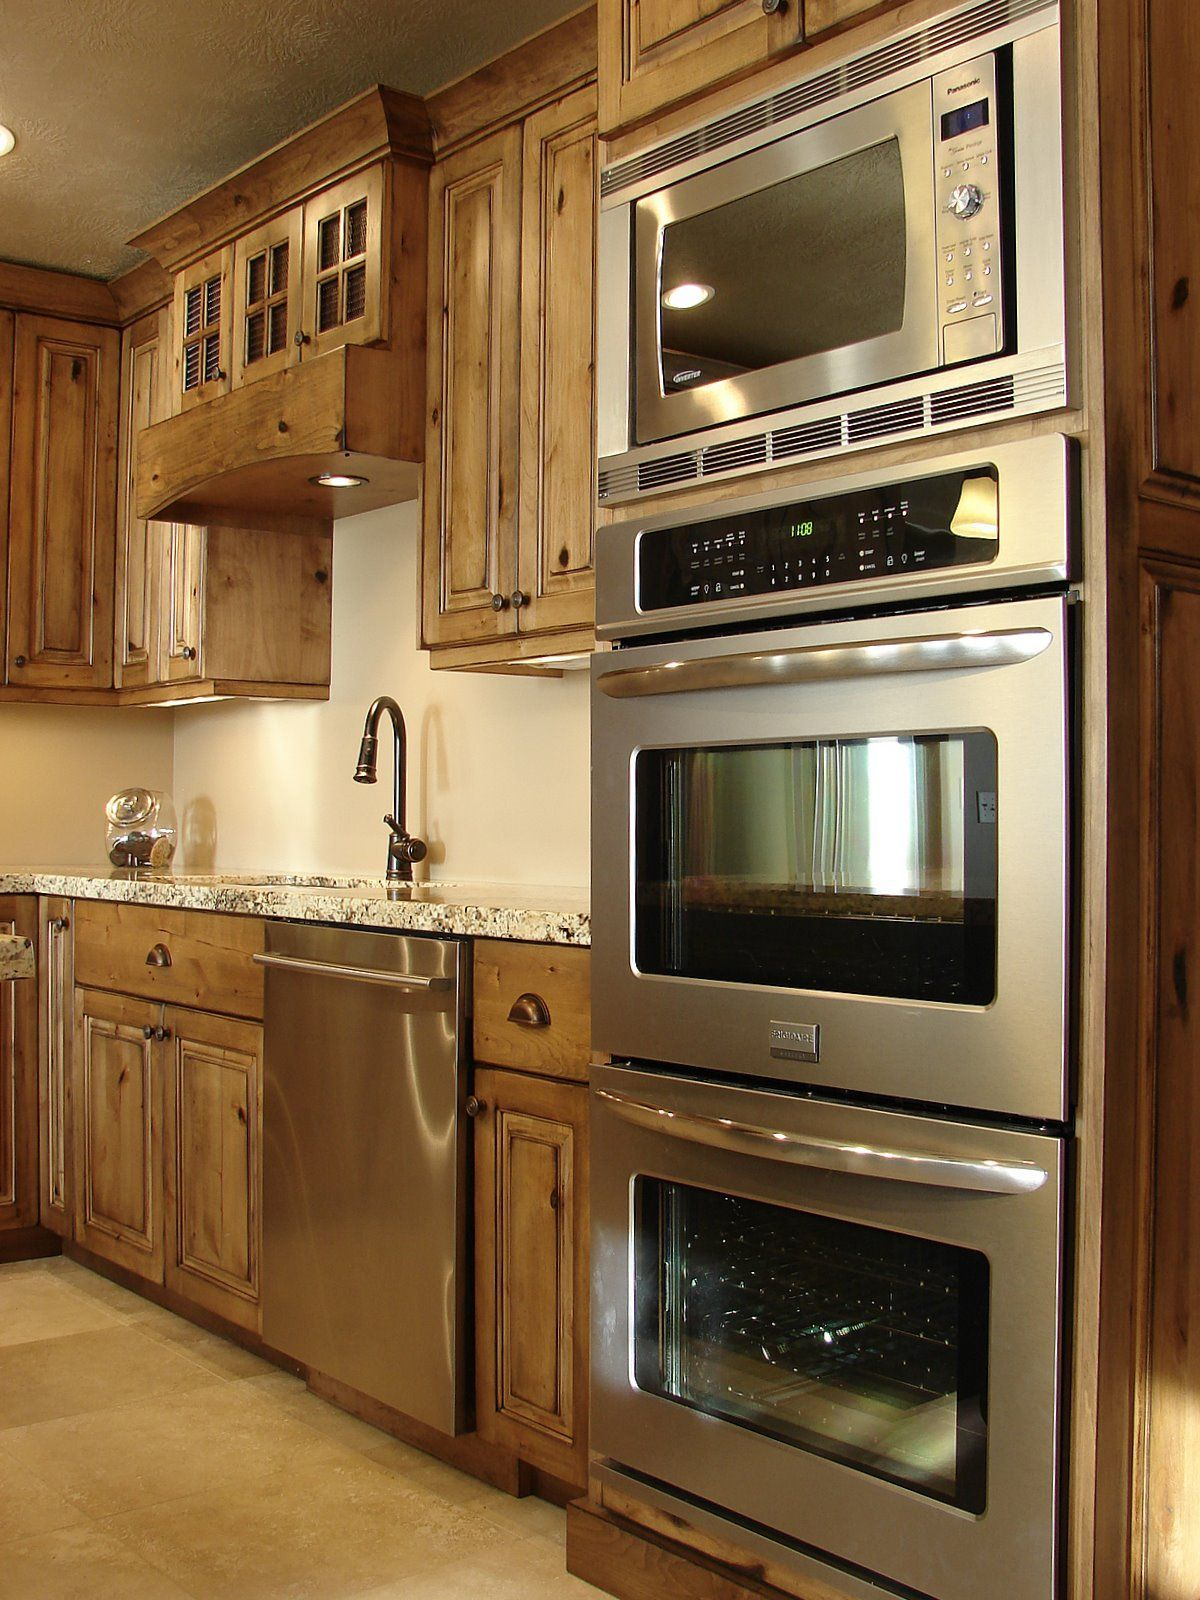 double oven and microwave and alder kitchen cabinets